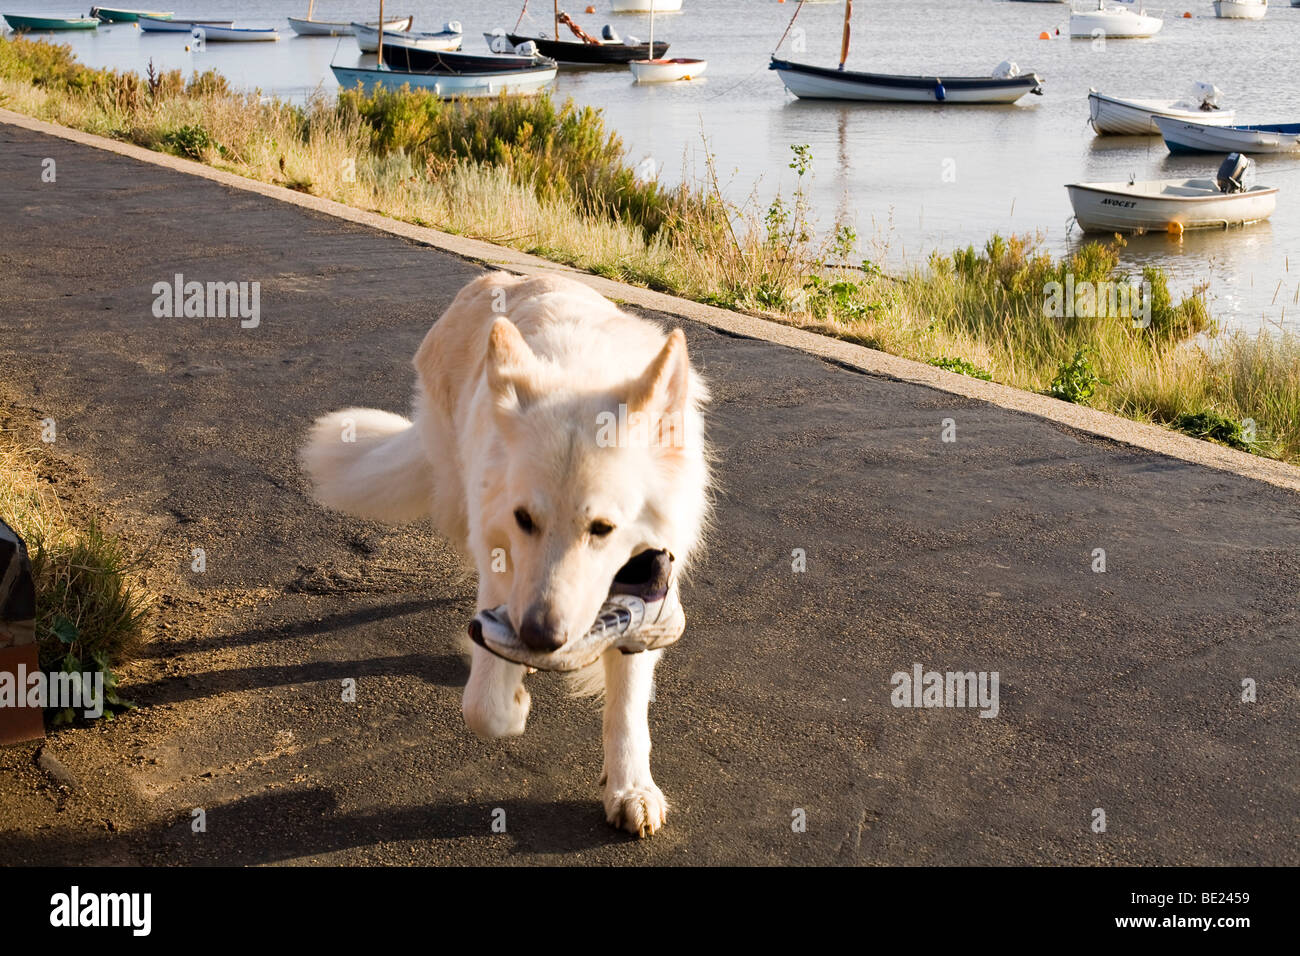 dog carrying shoe on a path by the sea - Stock Image